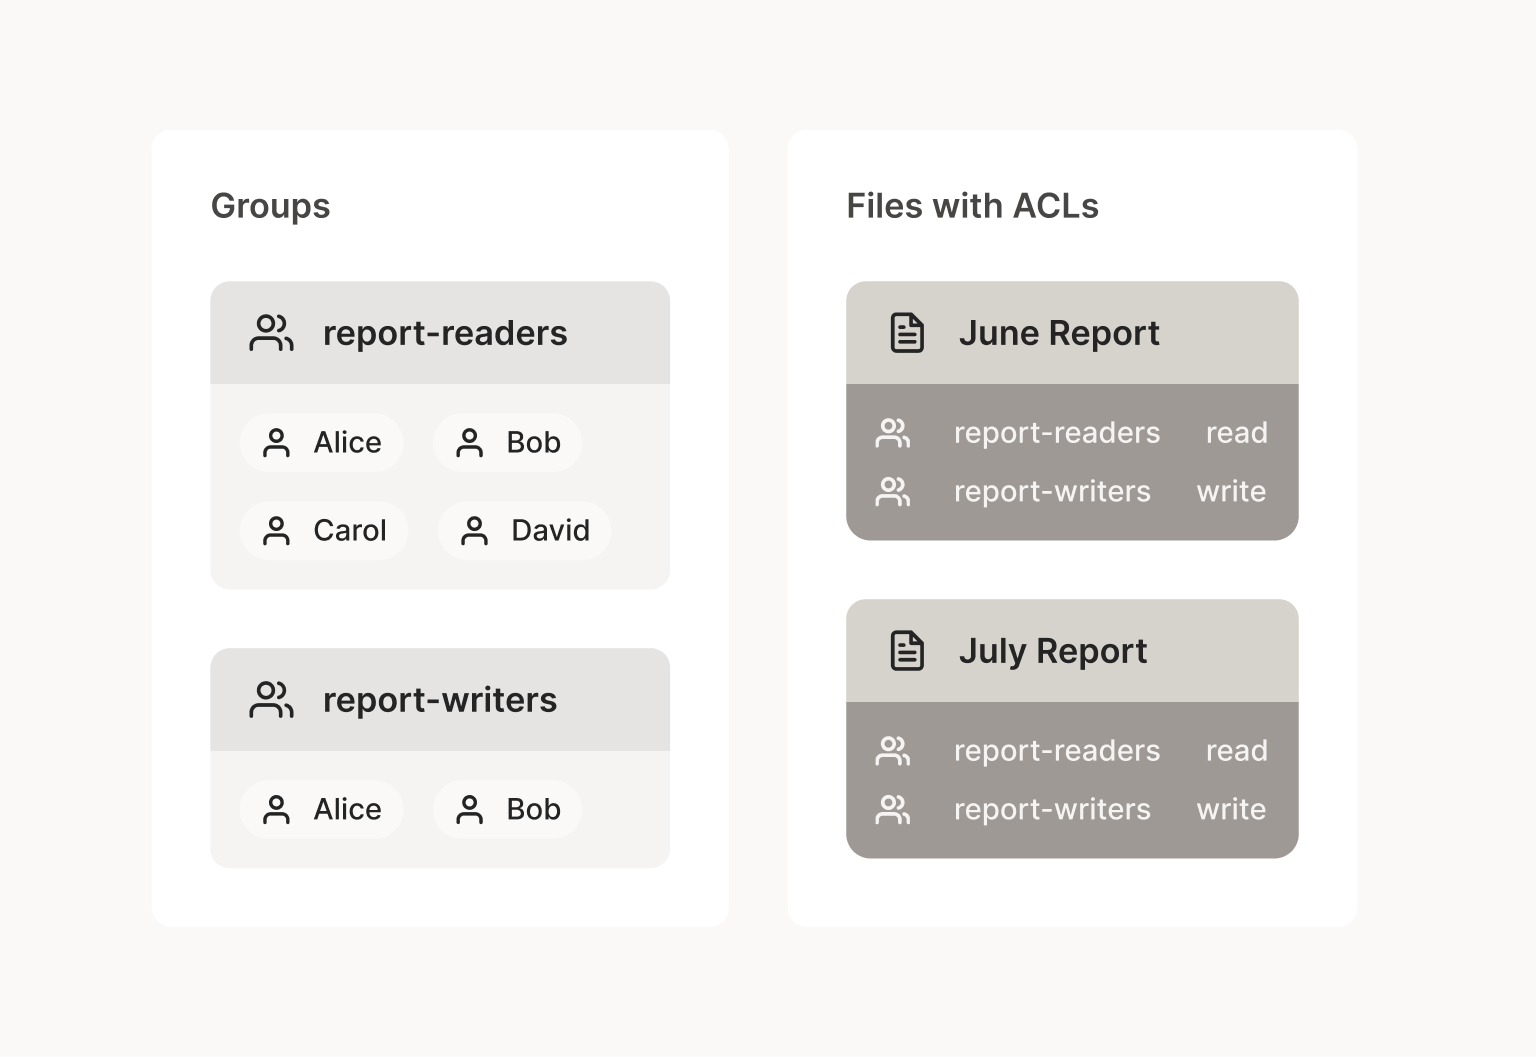 A diagram showing two groups called report-writers and report-readers, each containing several users. These groups are then used to set permissions on June and July reports which allow members of the report-writers group to write and the report-readers group to read these report files.